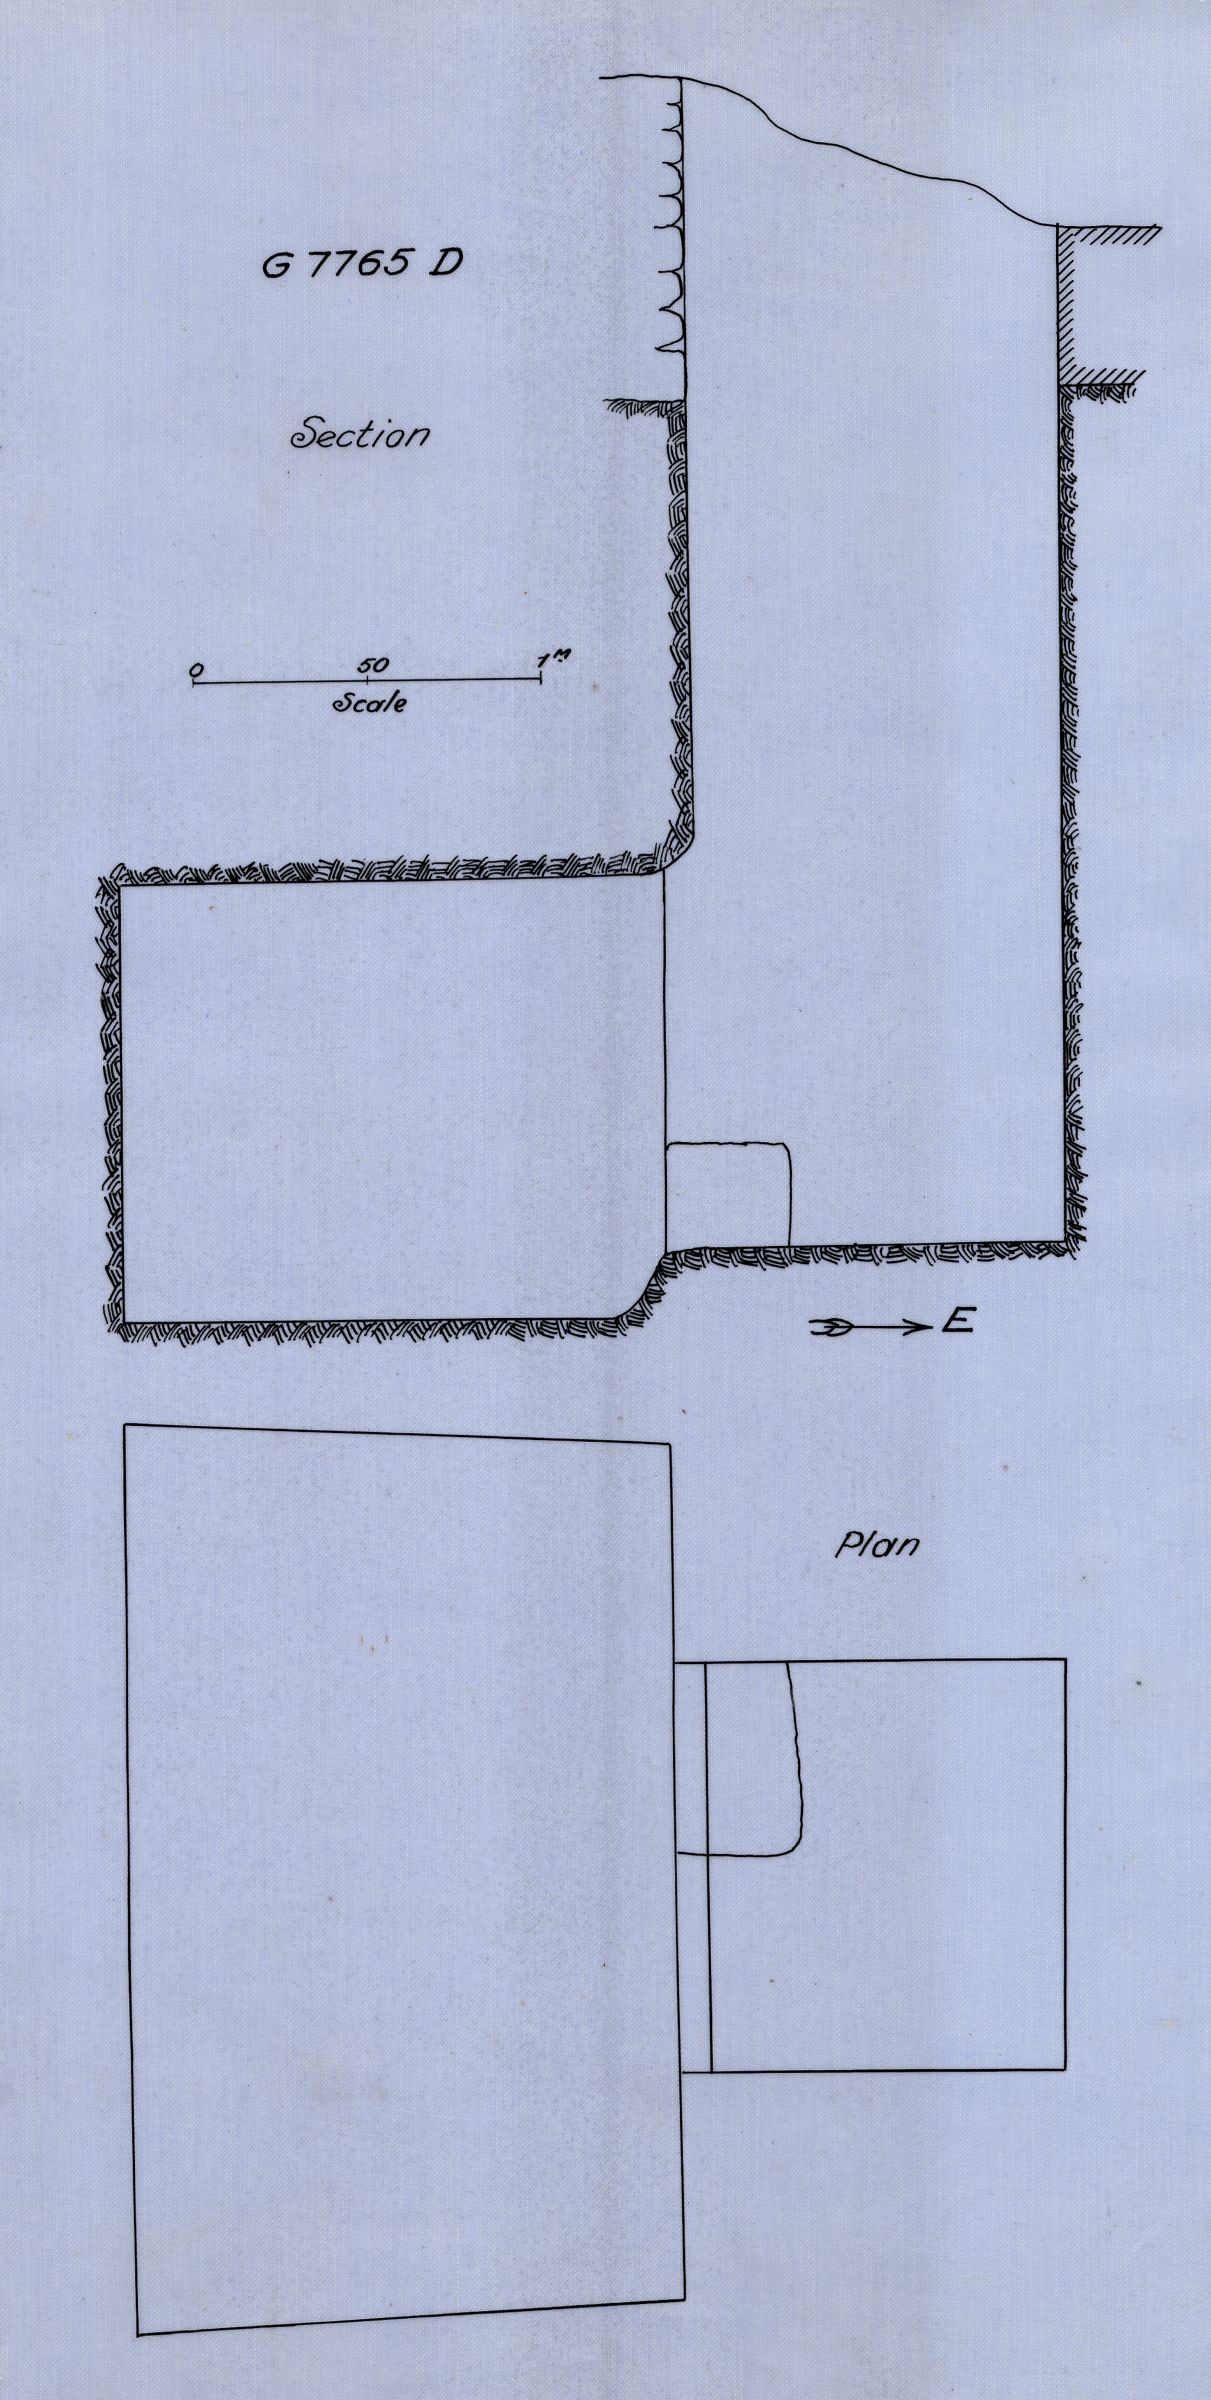 Maps and plans: G 7765, Shaft D